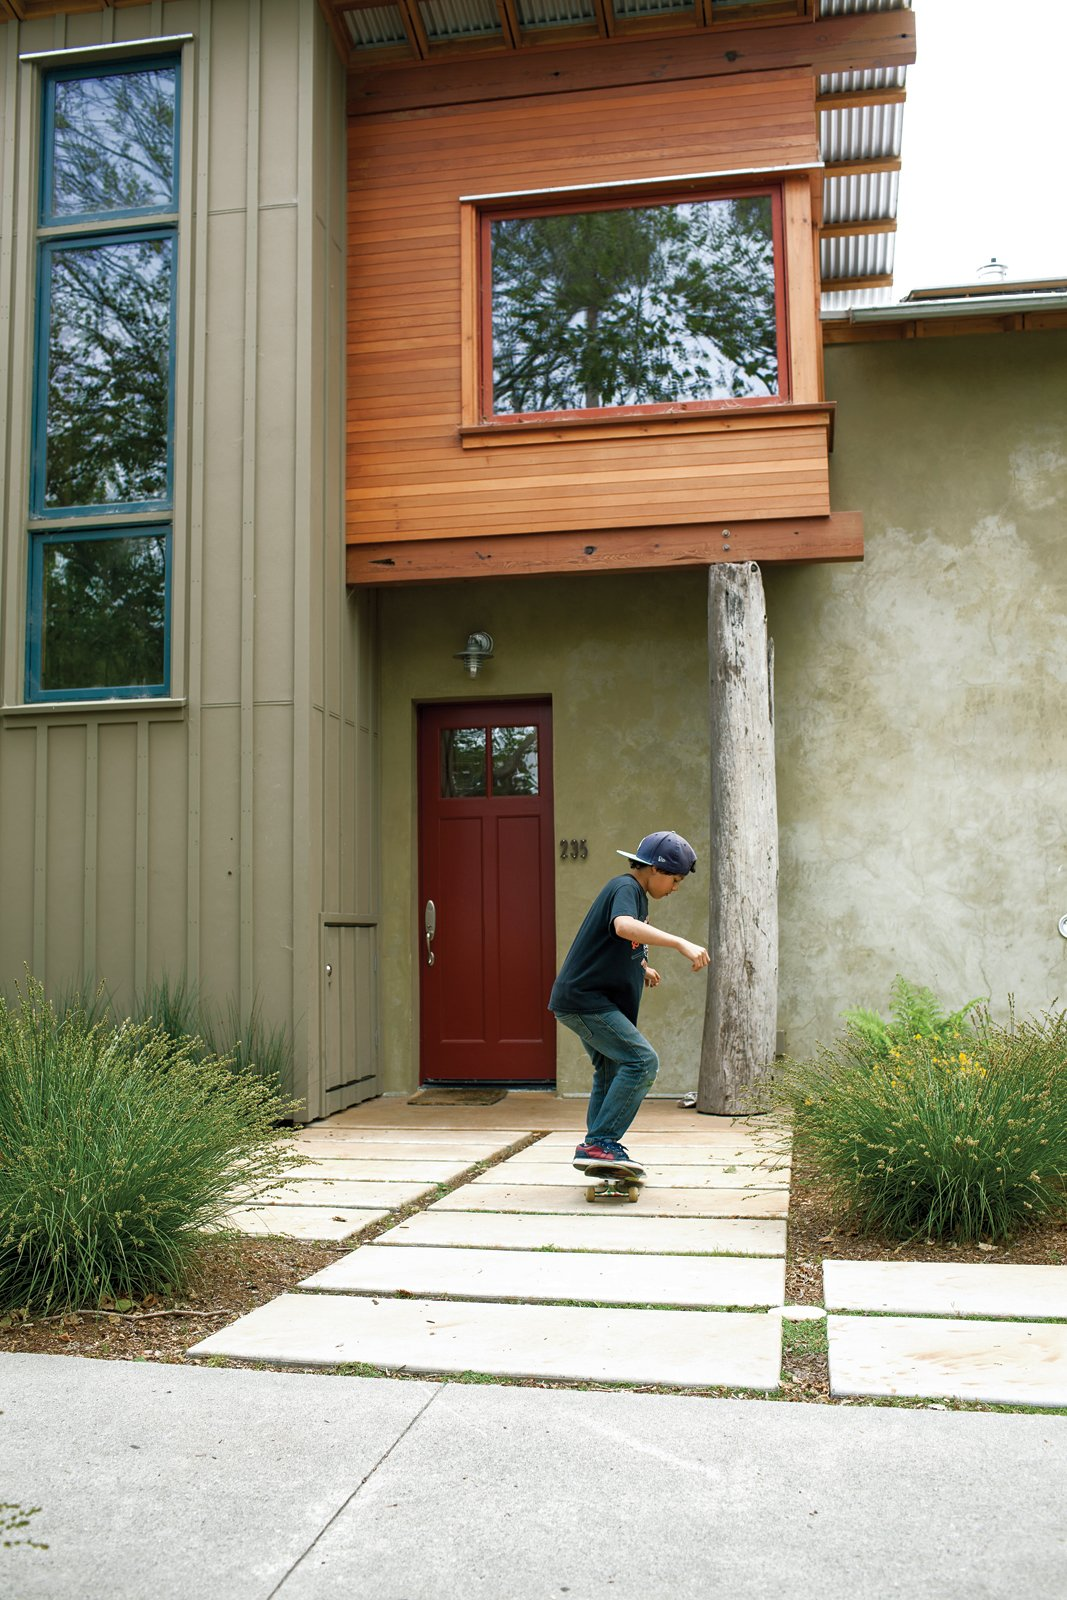 Tagged: Outdoor, Shrubs, and Pavers Patio, Porch, Deck.  Photo 5 of 8 in Green Zero-Energy Family Home in Santa Cruz